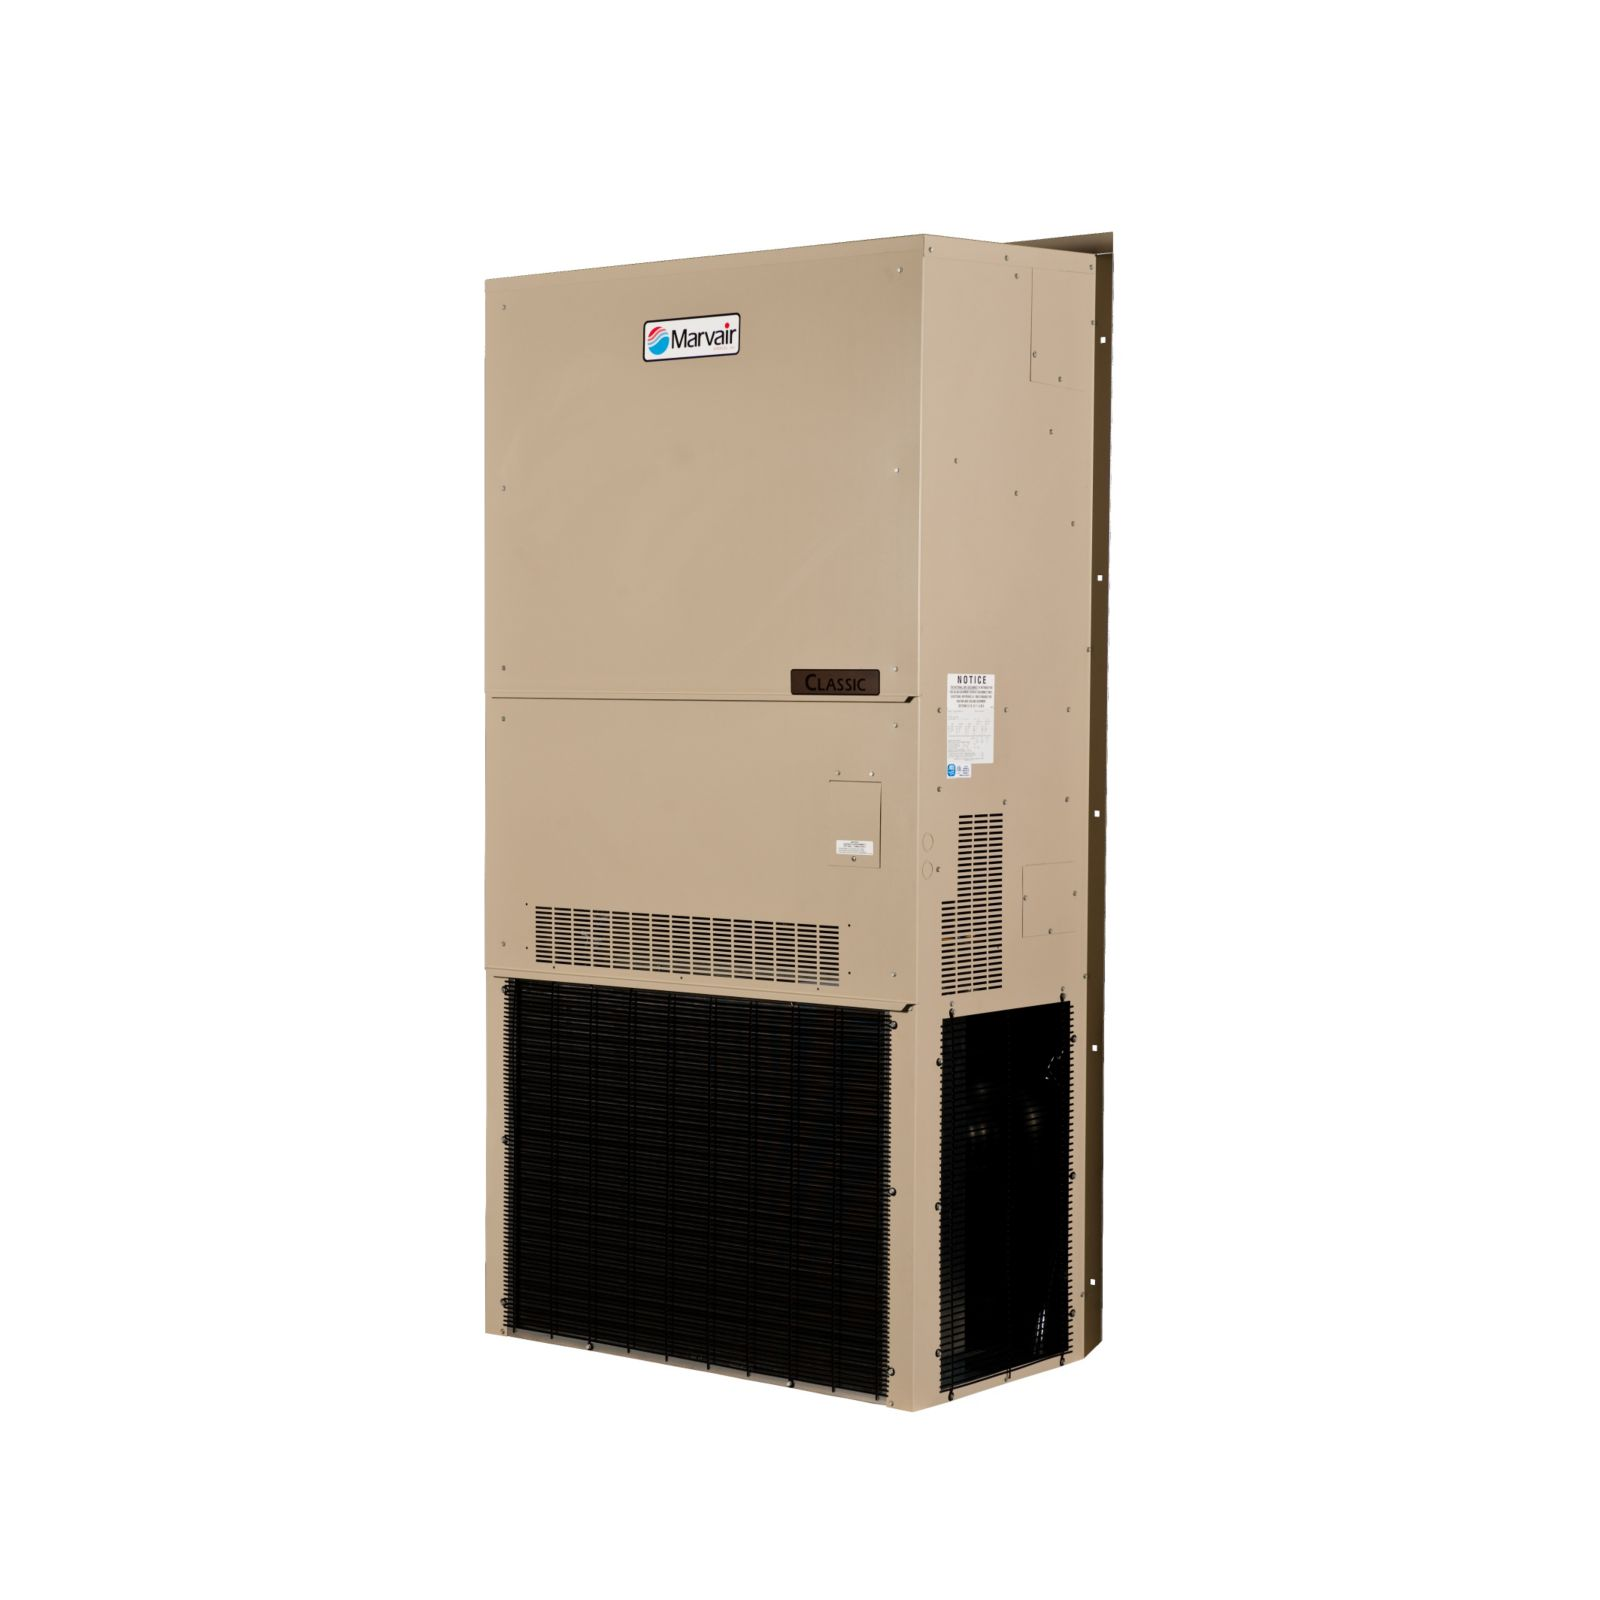 Marvair AVPA24HPA000NU-A2-100 - Wall Mount Heat Pump, Classic, 2 Ton, 208-230/1, No Heat, Manual Damper, Scroll, R410A